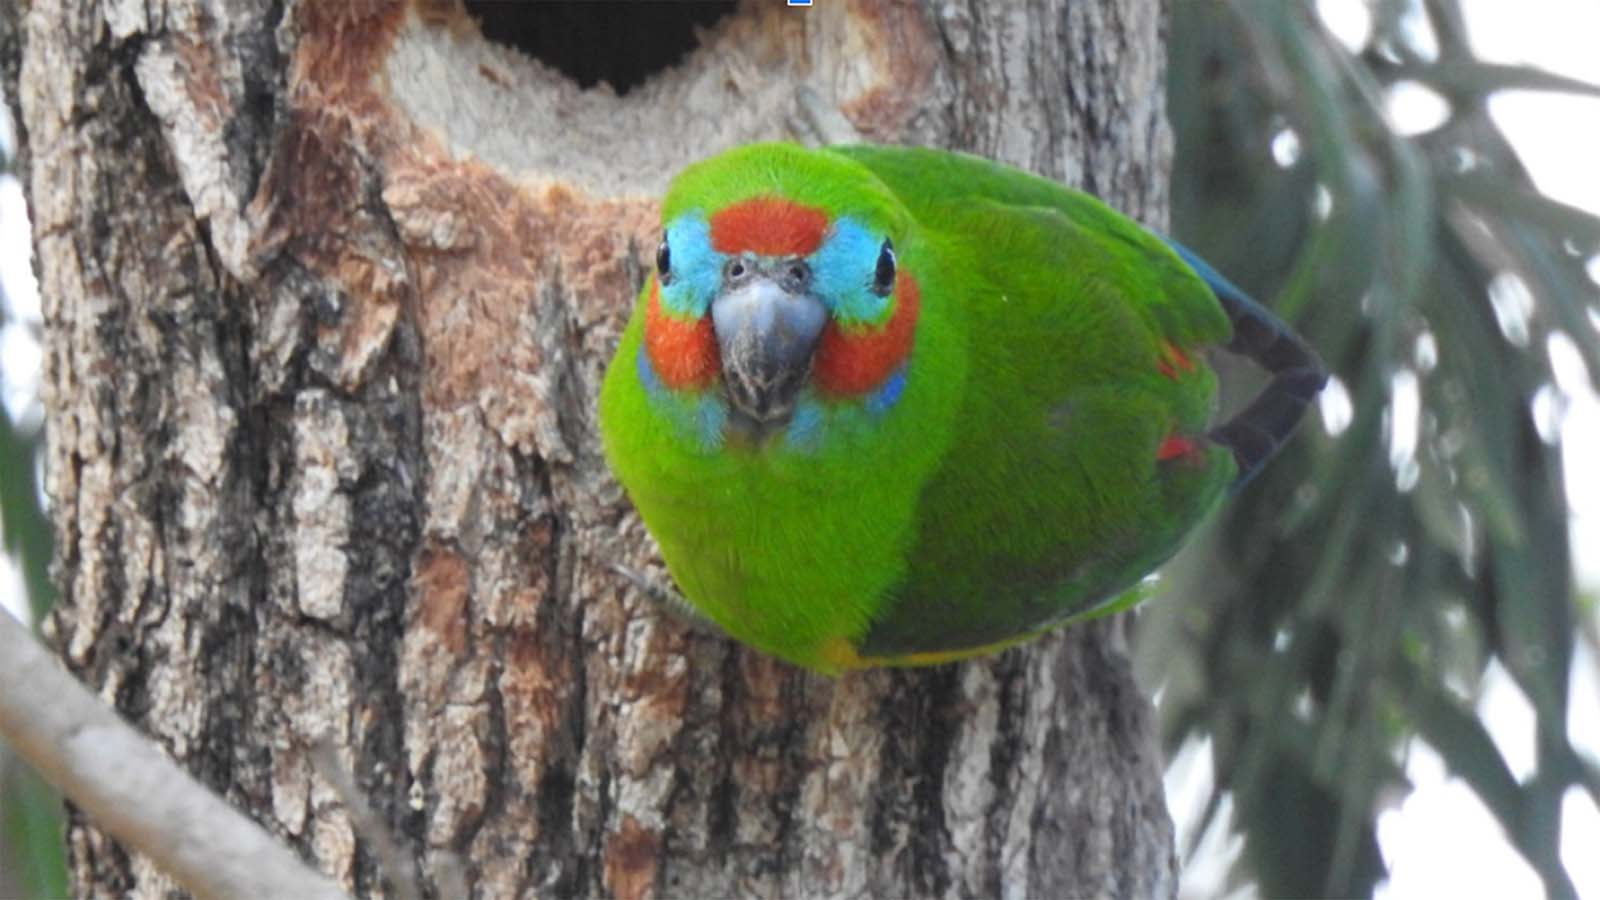 A Double-Eyed Fig Parrot Clinging To A Tree Looking At The Camera